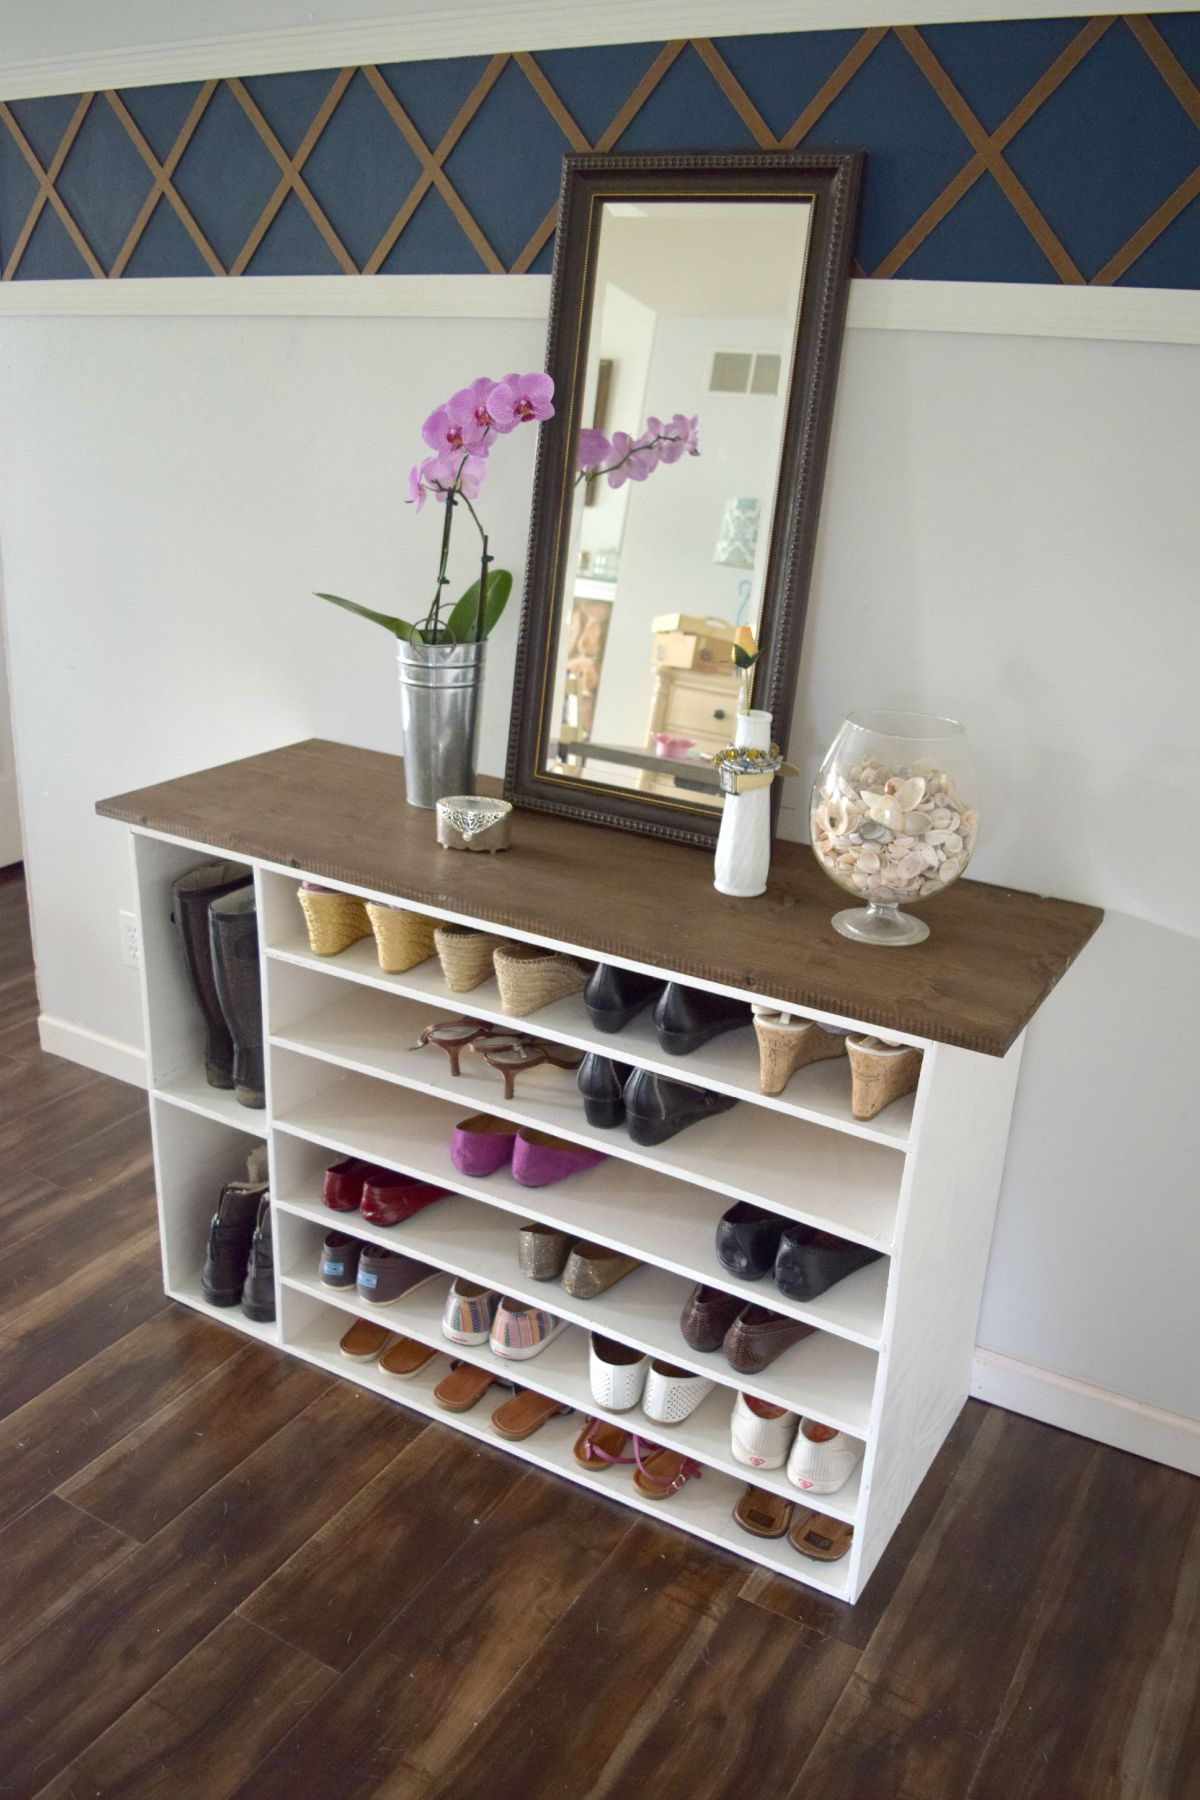 Stylish diy shoe rack perfect for any room entryway diy shoe rack solutioingenieria Image collections